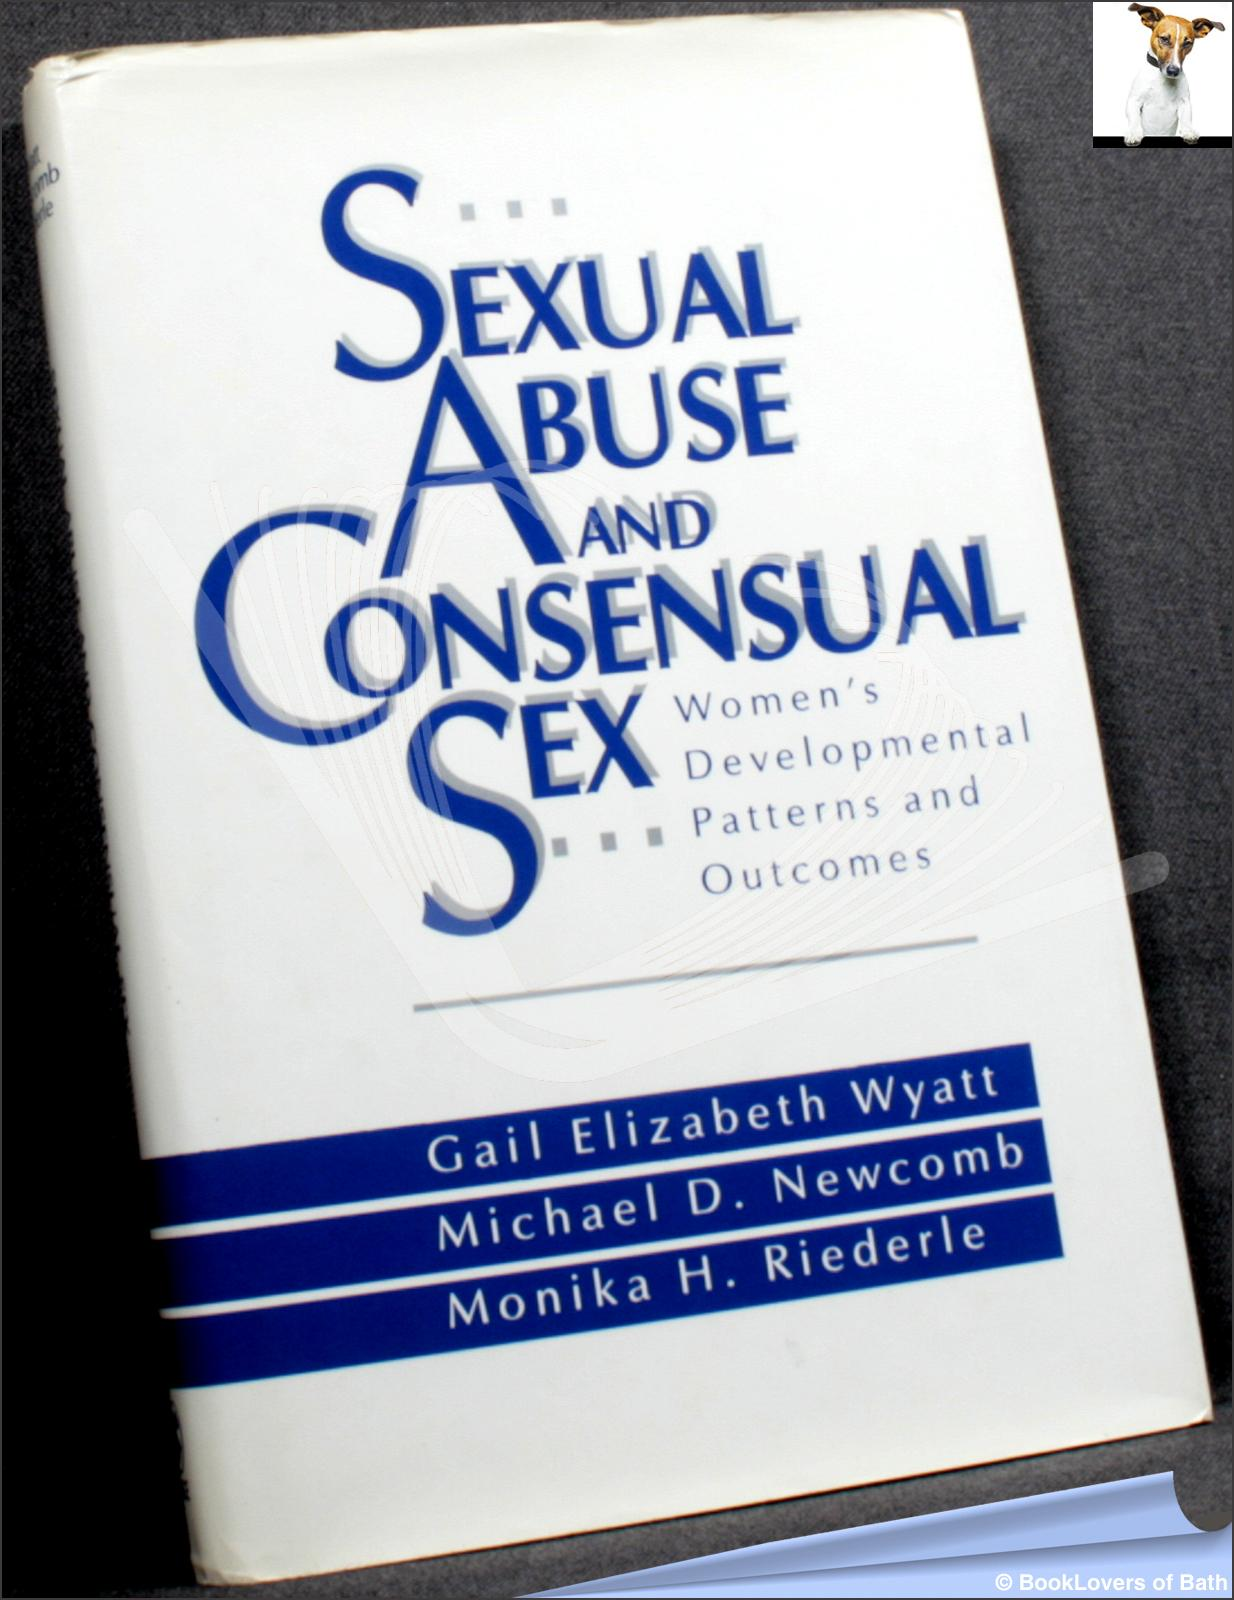 Sexual Abuse and Consensual Sex - Gail Elizabeth Wyatt; Michael D. Newcomb; Monika H. Riederle